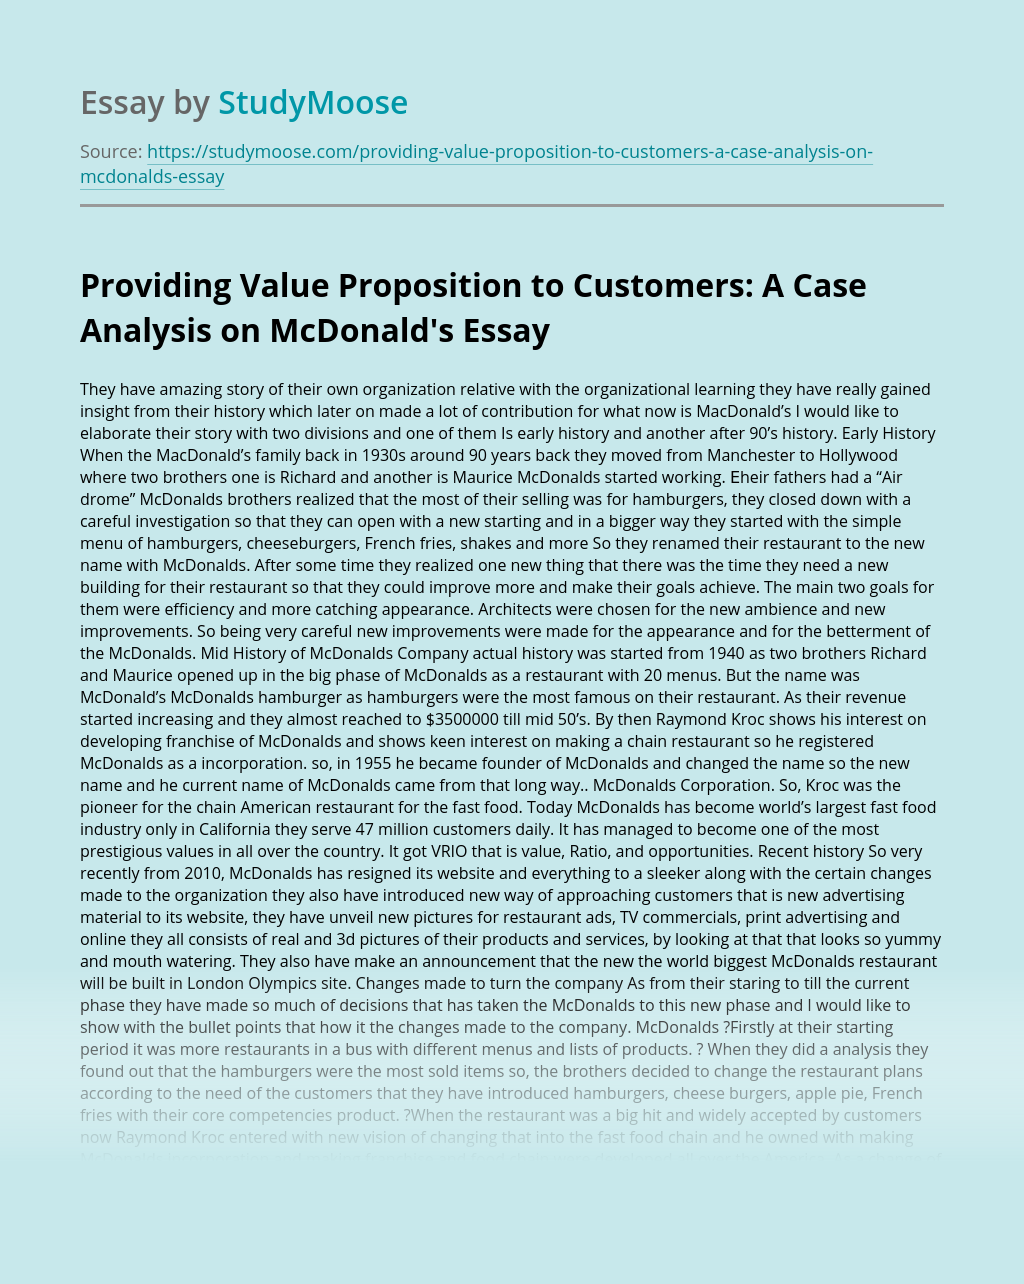 Providing Value Proposition to Customers: A Case Analysis on McDonald's